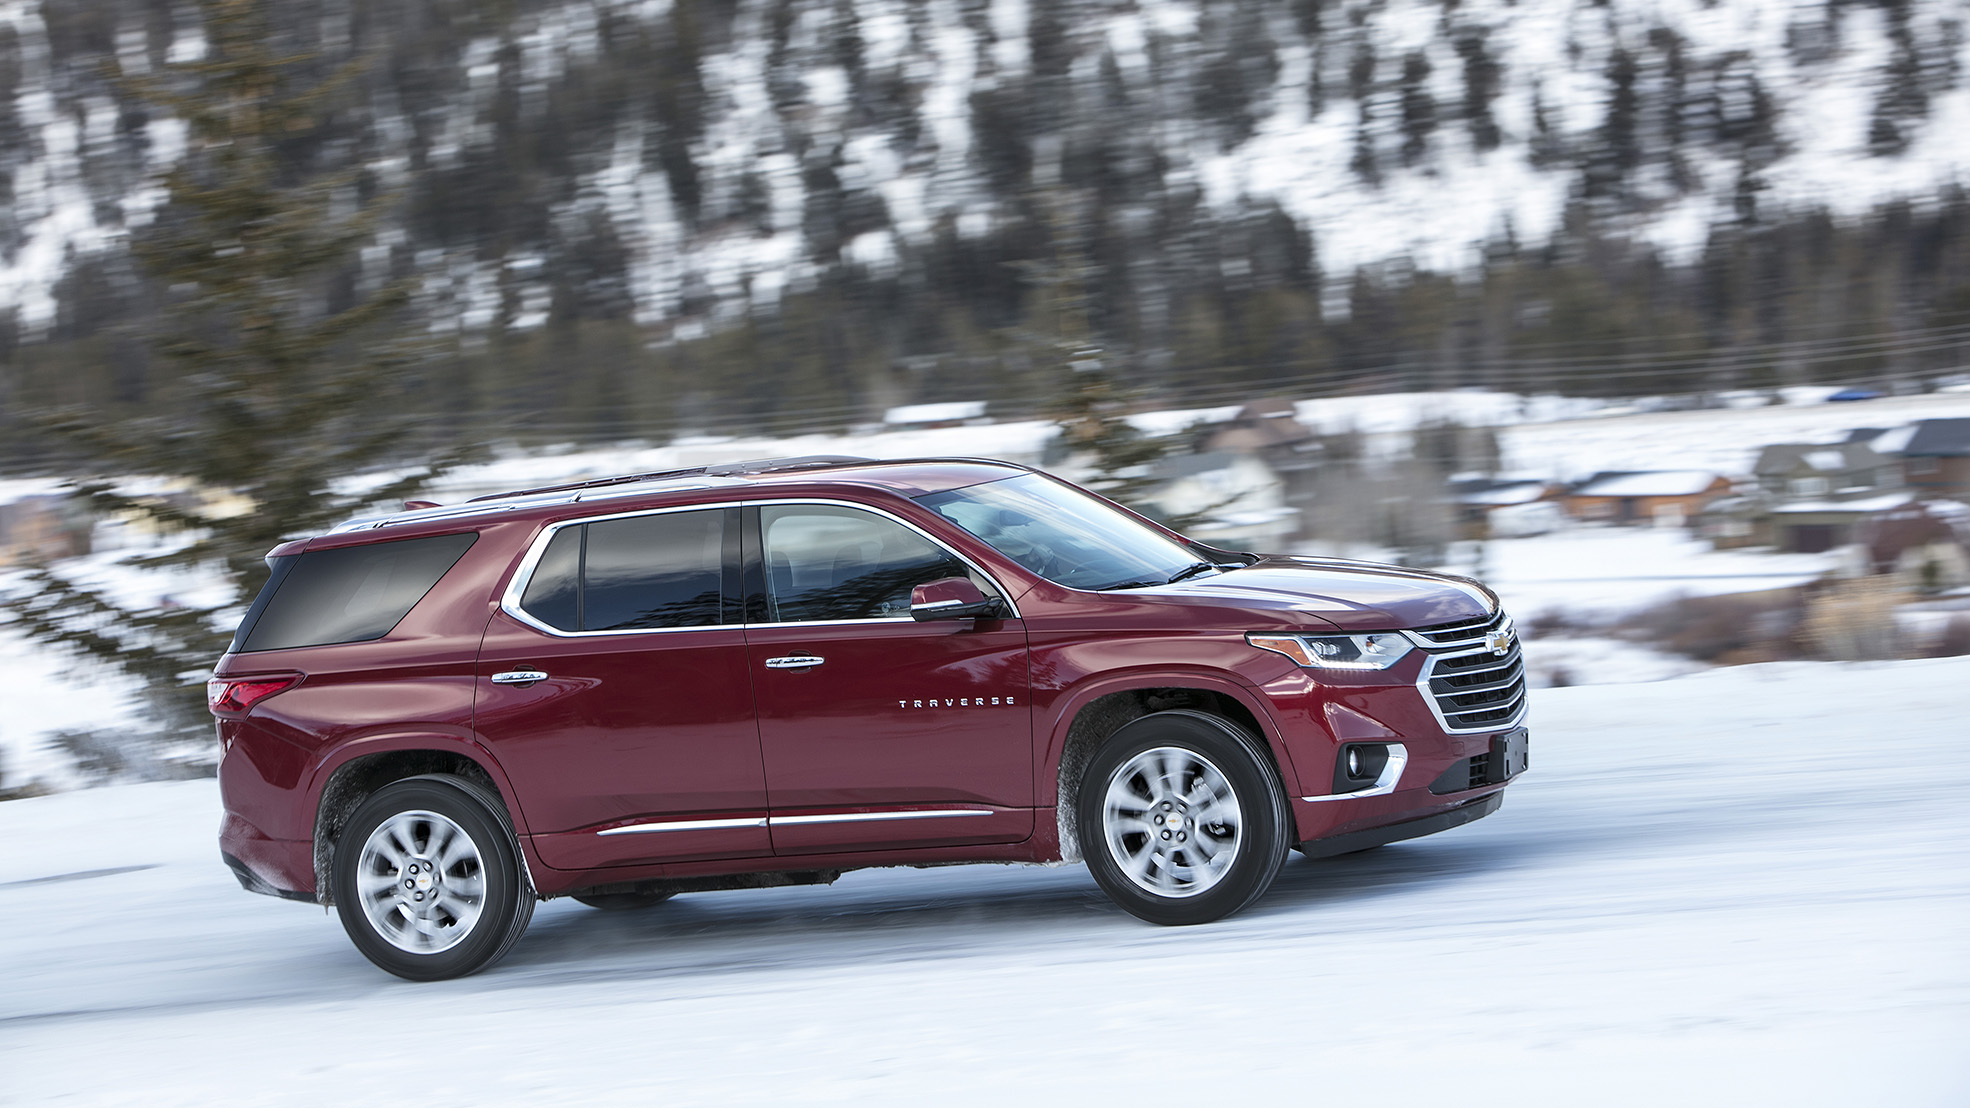 Skiers Have You Ever Considered Chevrolet For Driving In The Snow